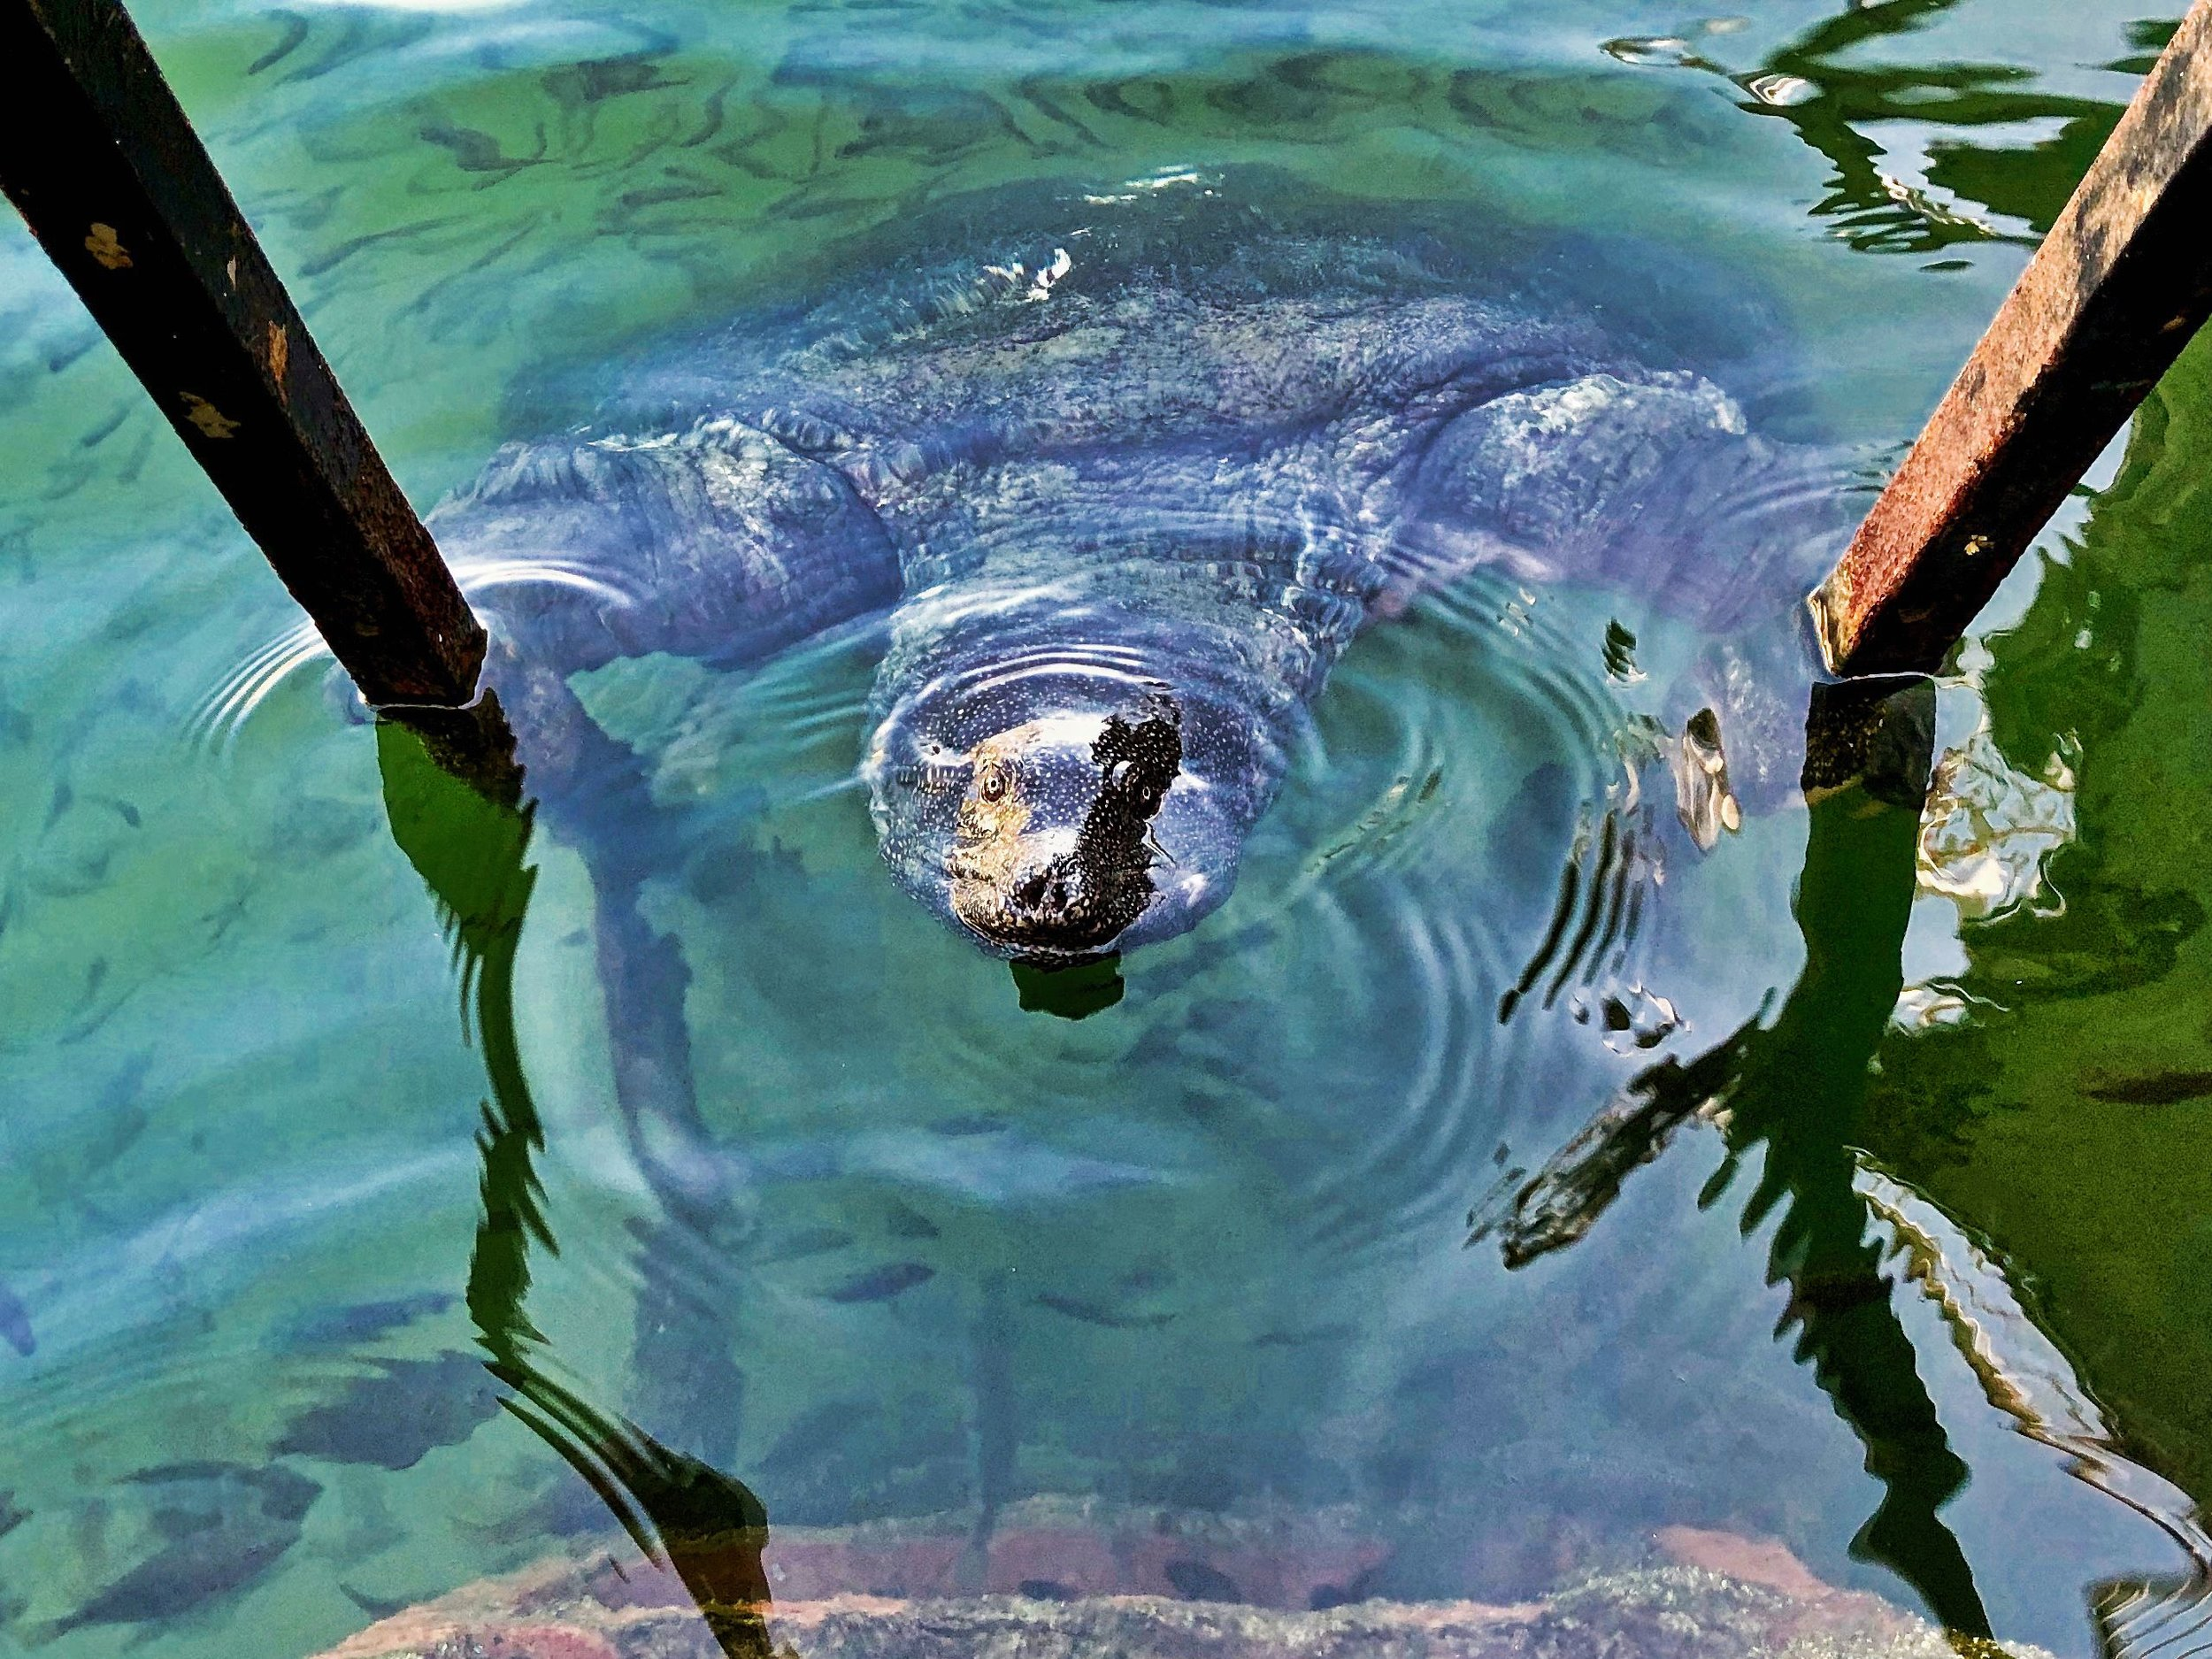 Nile Turtle in the Dalyan River #3